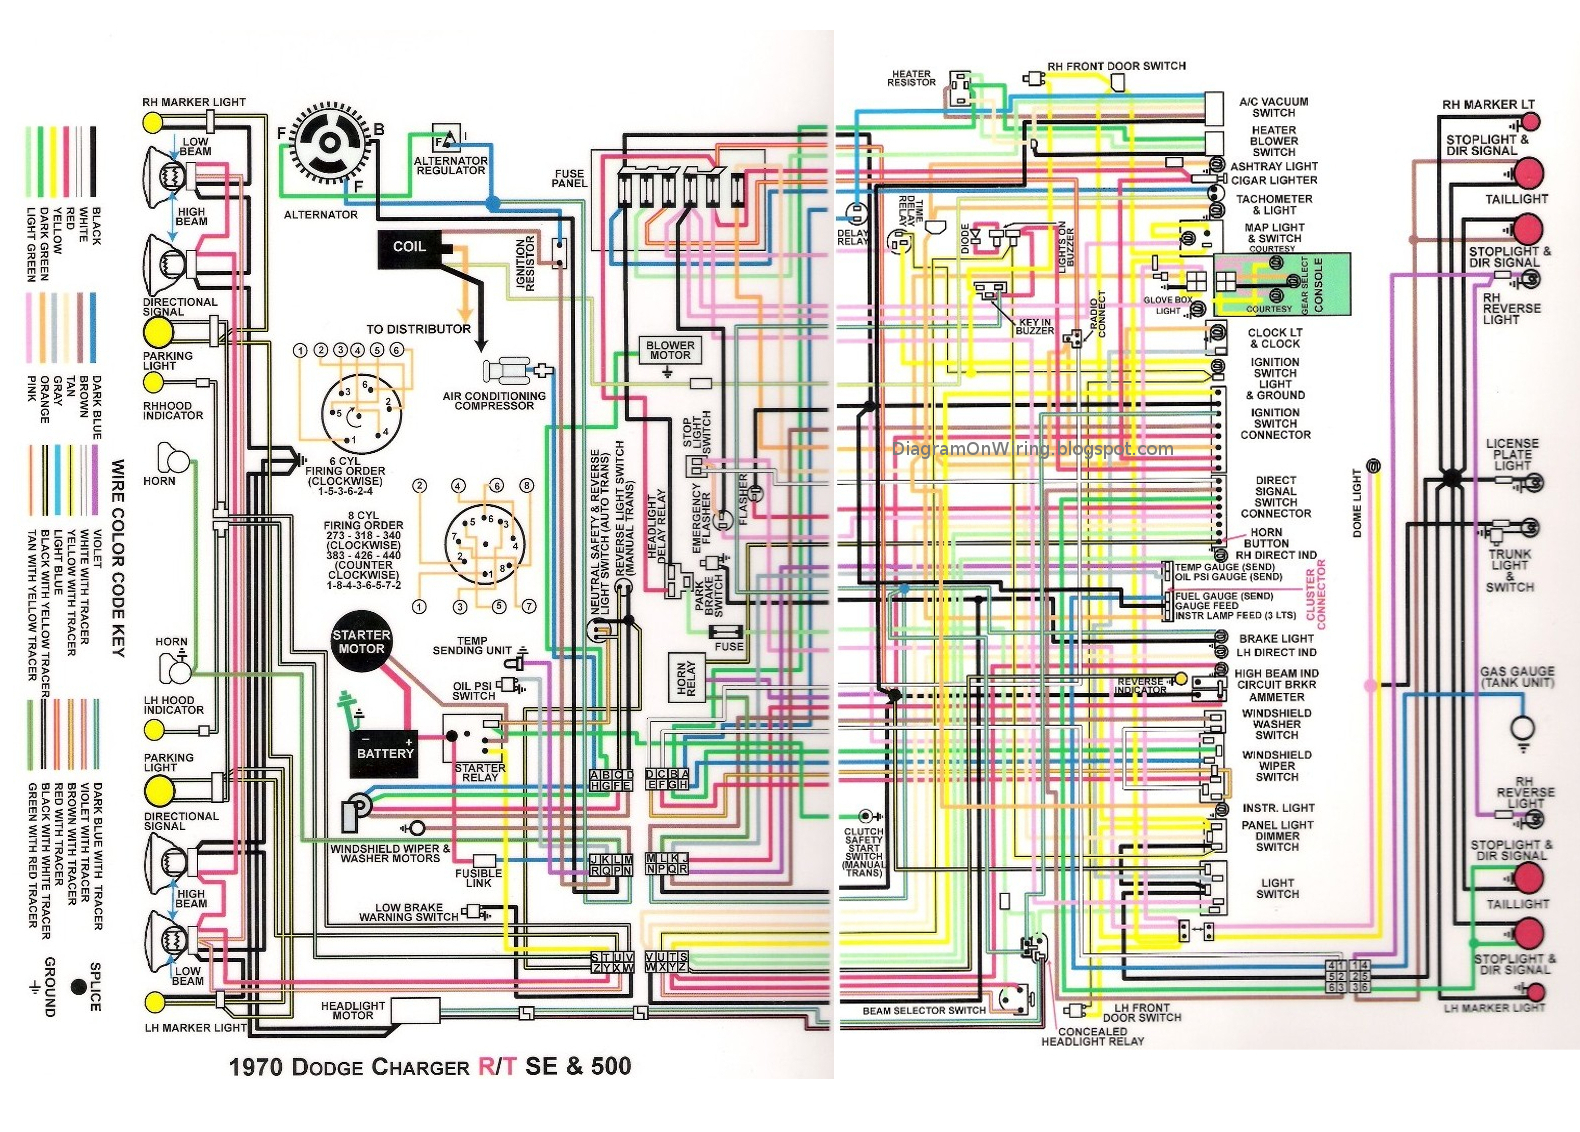 Complete+Wiring+Diagram+for+1970+Dodge+Charger+RT+SE+and+50 72 c10 wiring diagram 64 c10 wiring diagram \u2022 free wiring diagrams 1972 chevy pickup wiring schematic at honlapkeszites.co